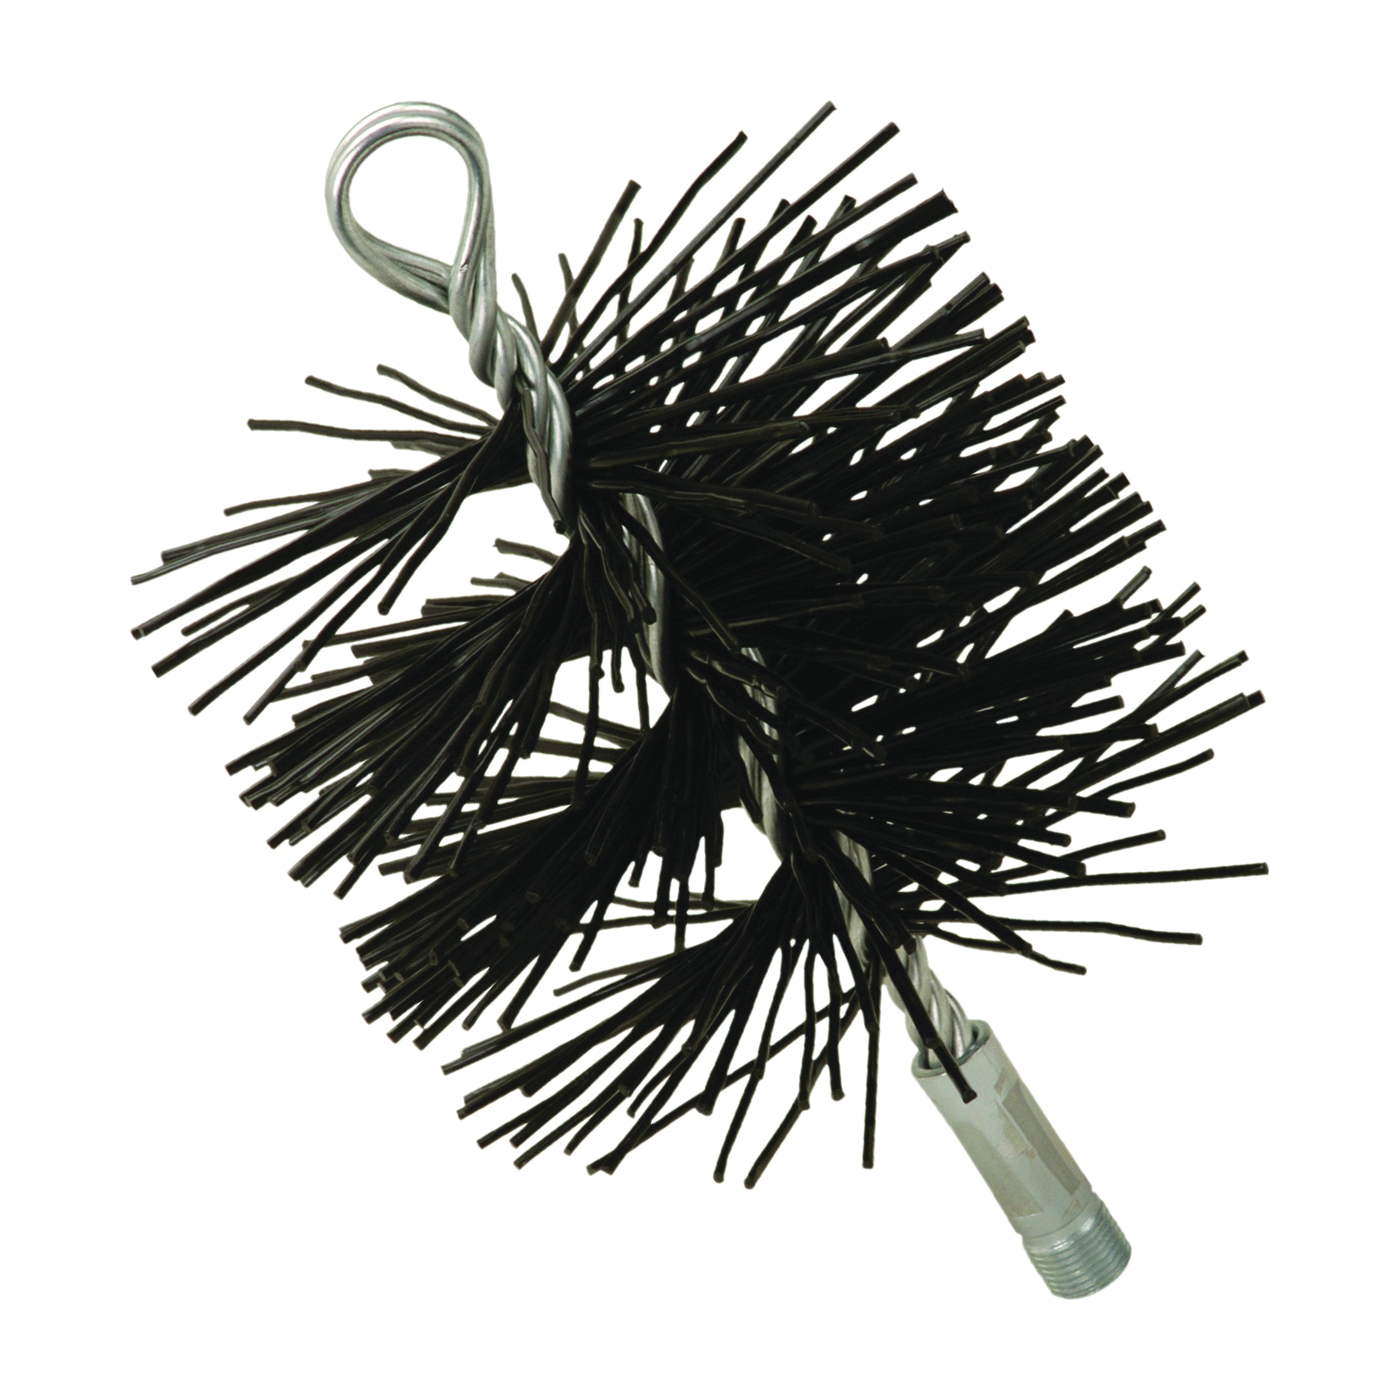 Picture of Imperial Polysweep BR0078 Round Chimney Brush, 7 in Dia Brush, Polypropylene Trim